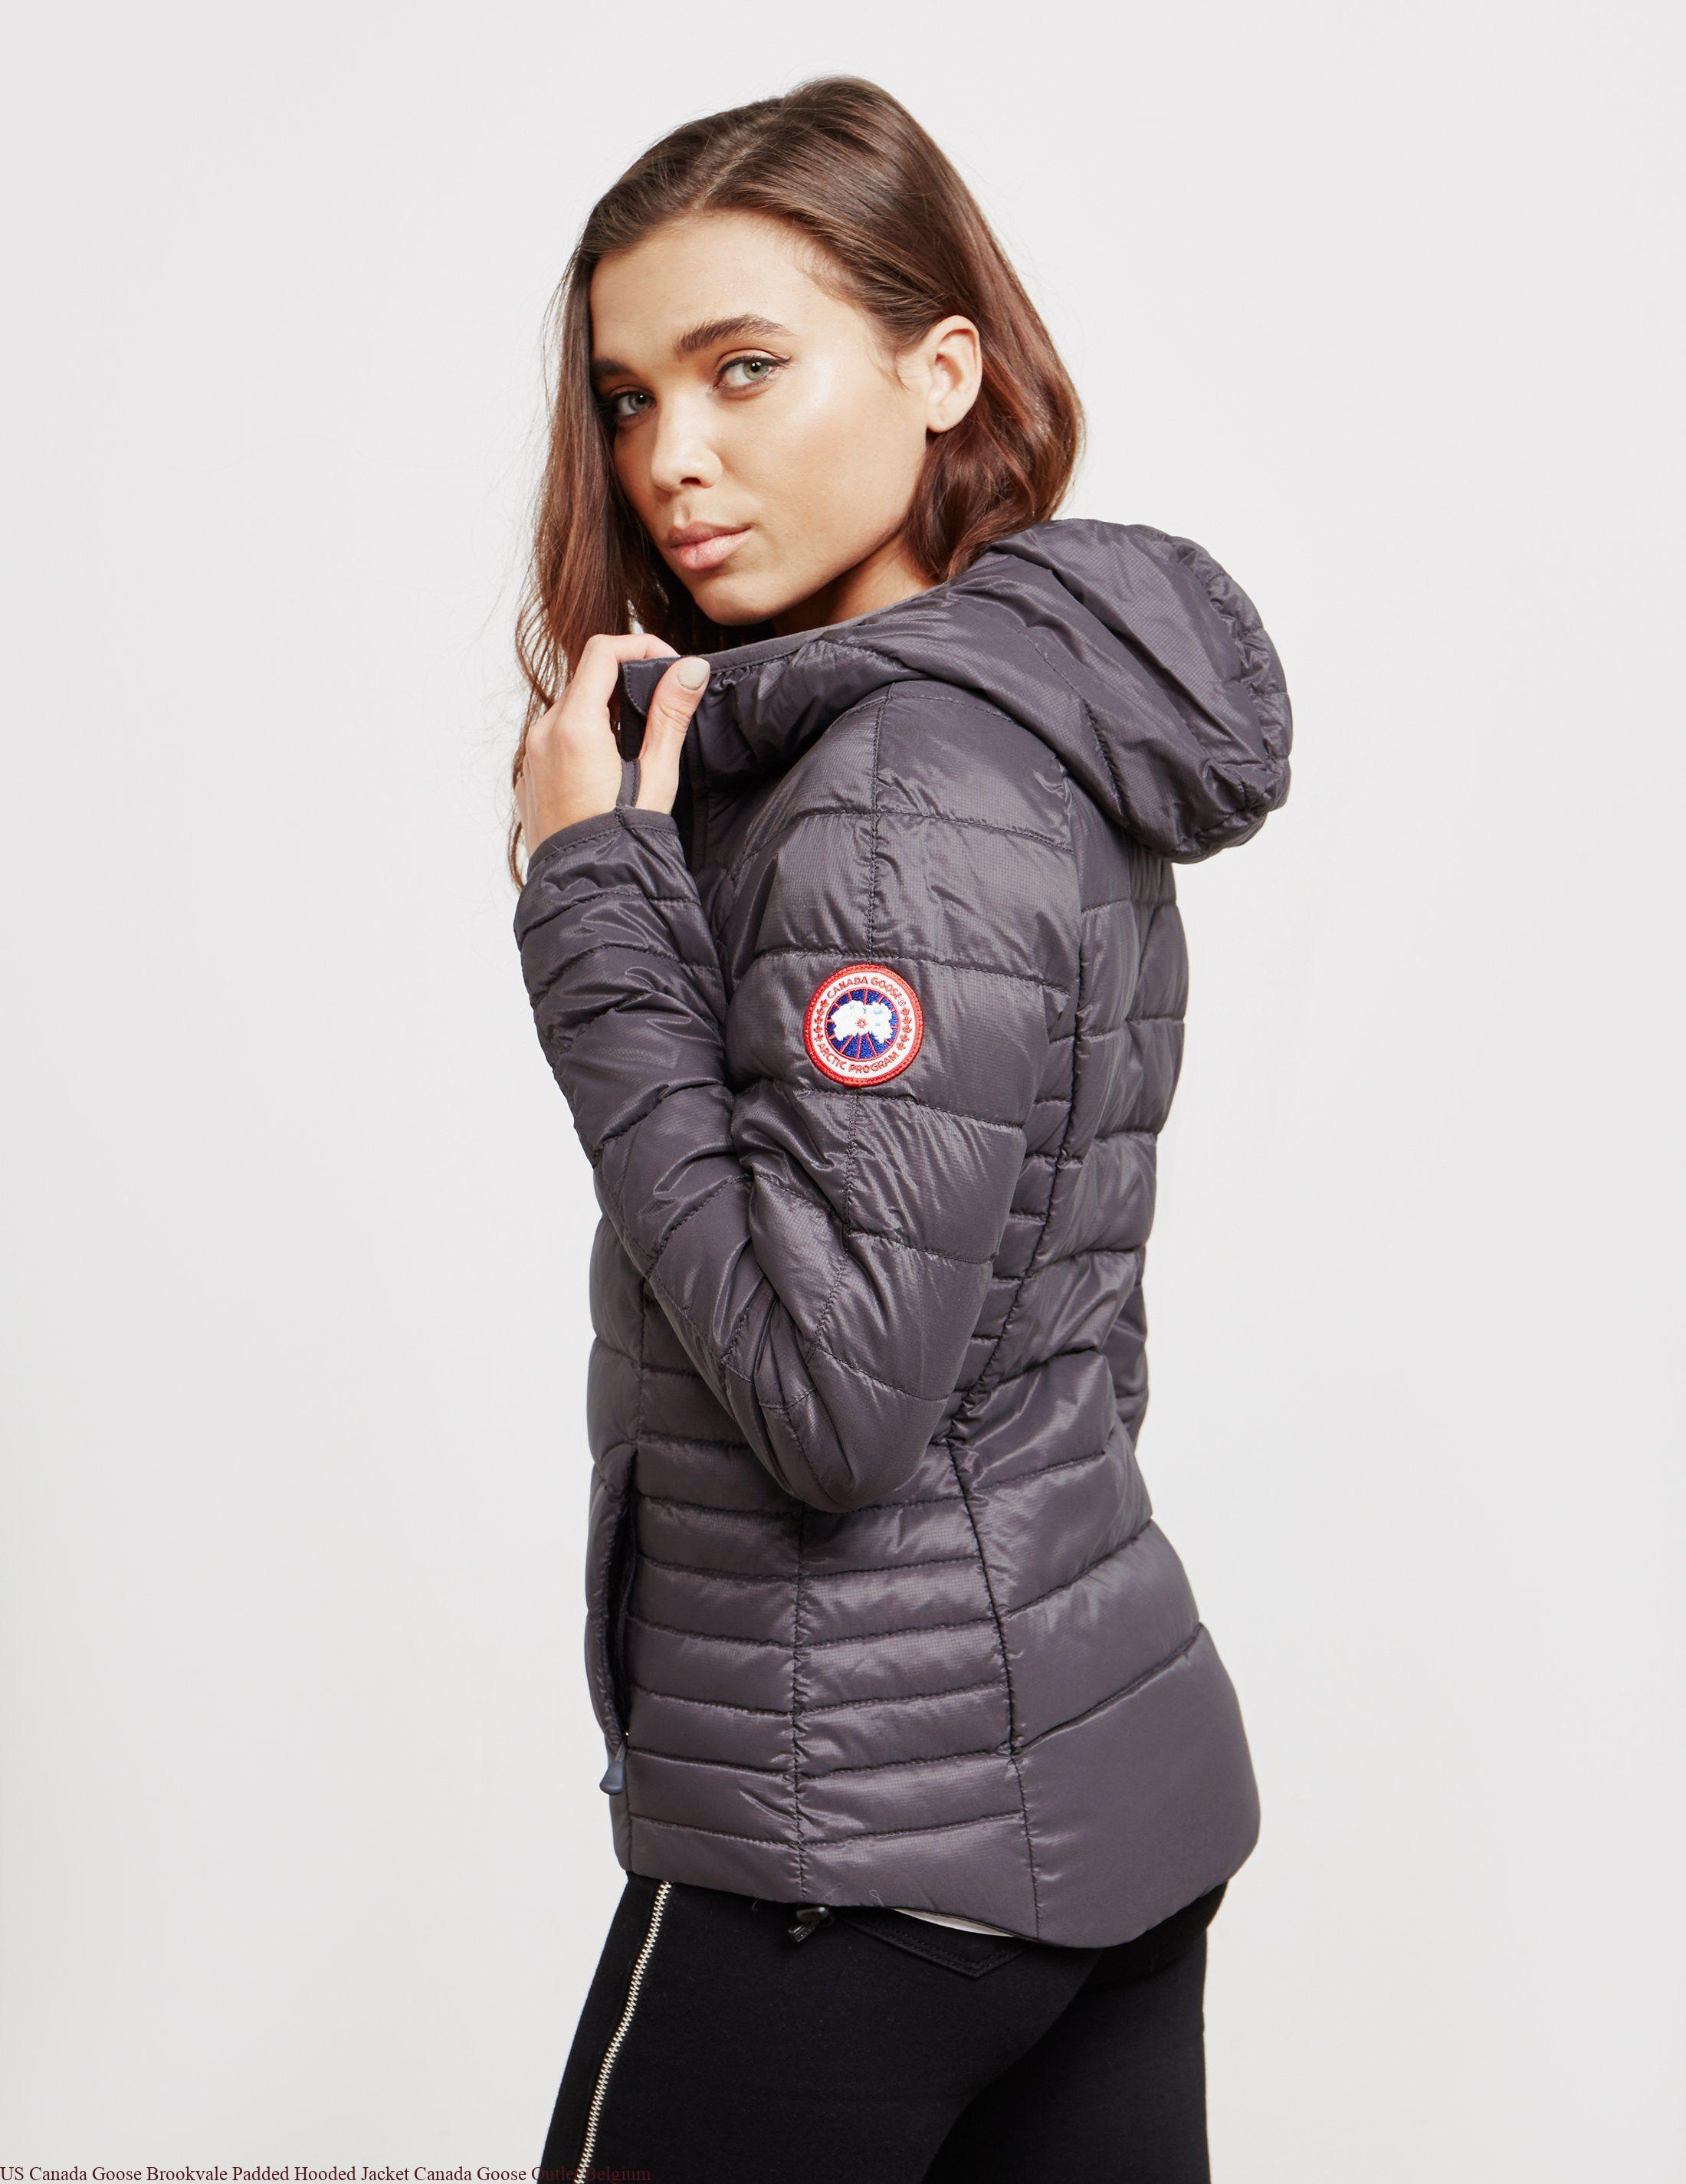 e00521d53 US Canada Goose Brookvale Padded Hooded Jacket Canada Goose Outlet Belgium